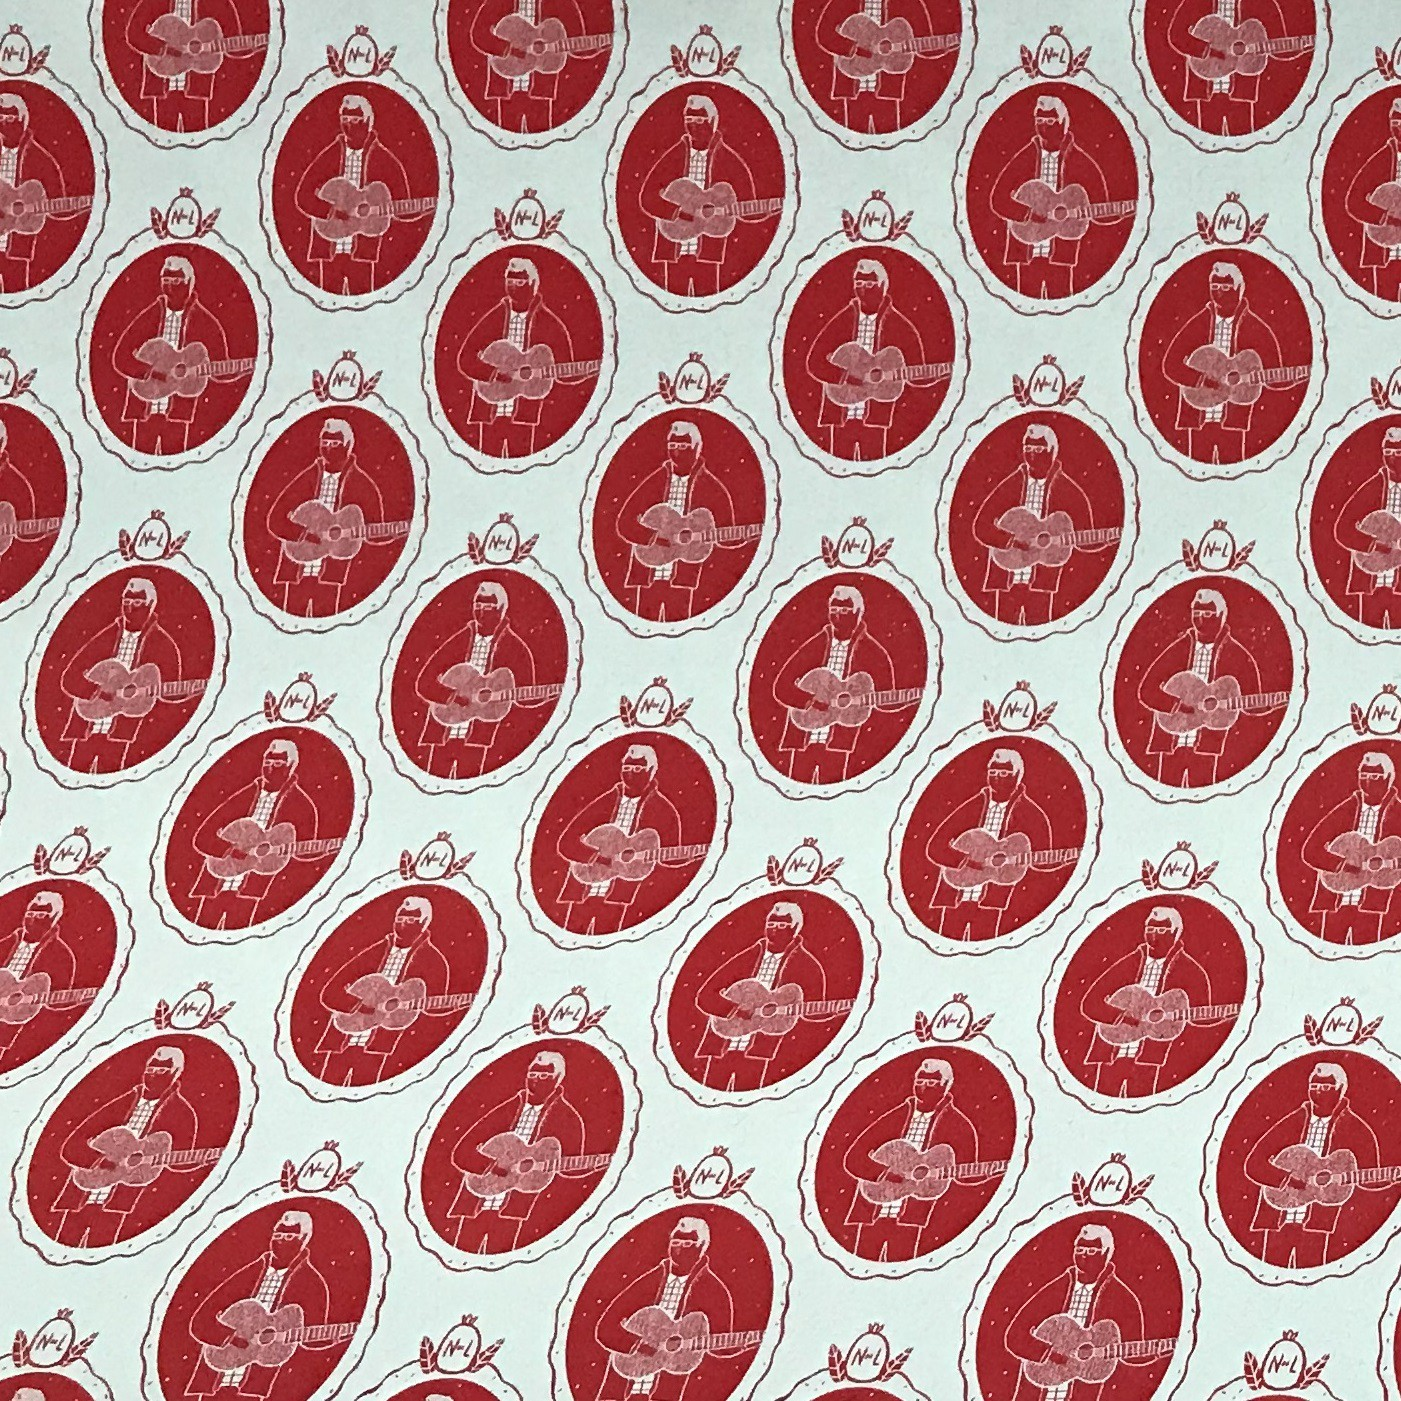 Nick Lowe - Wrapping Paper